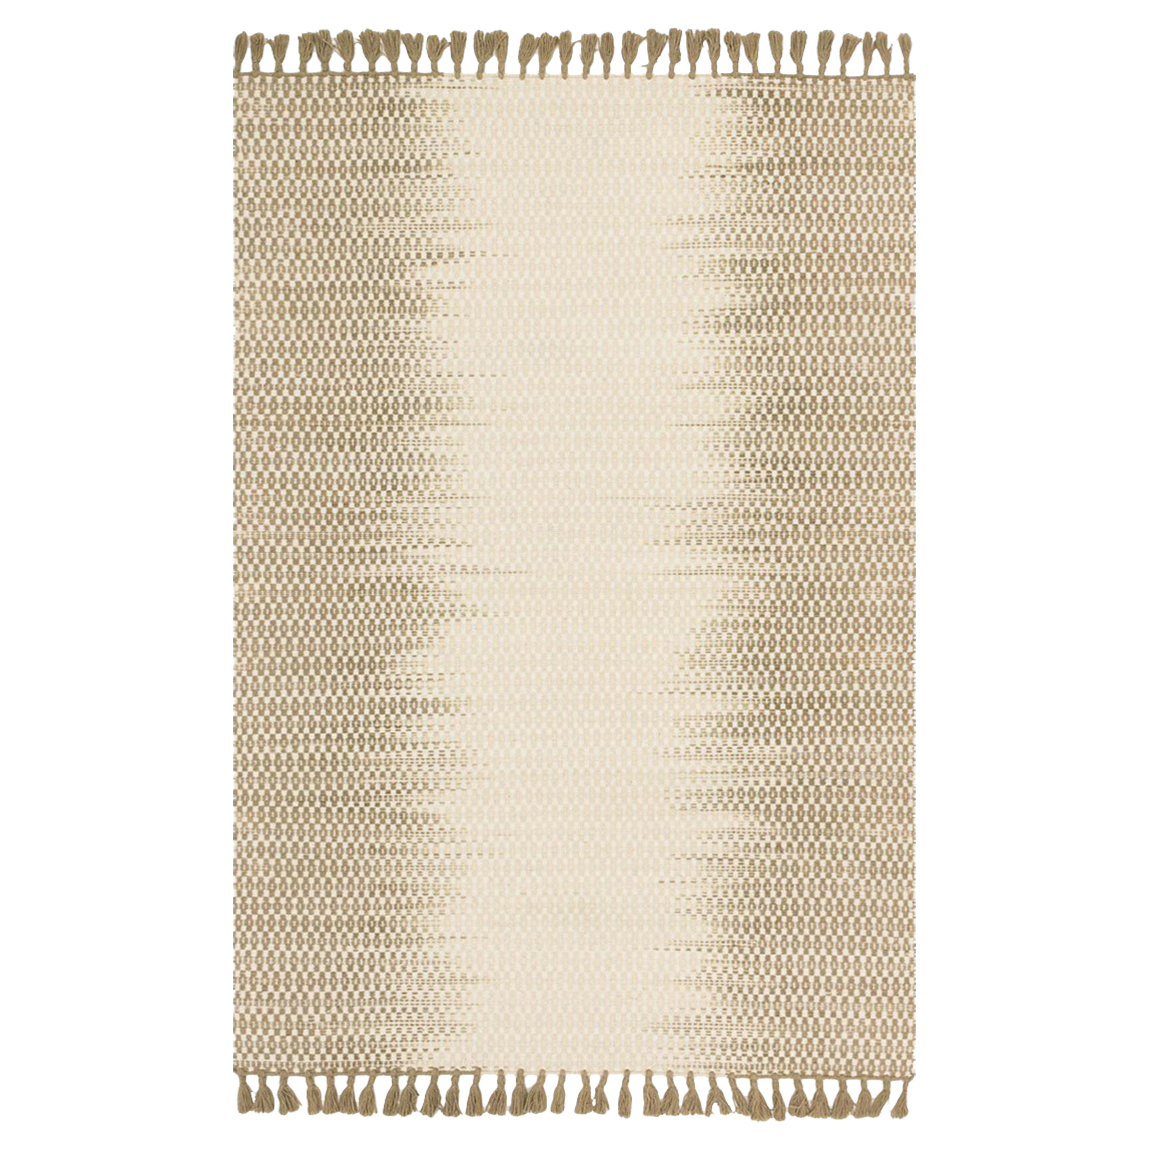 Tilly Global Olive Ombre Woven Wool Rug - 7'9x9'9